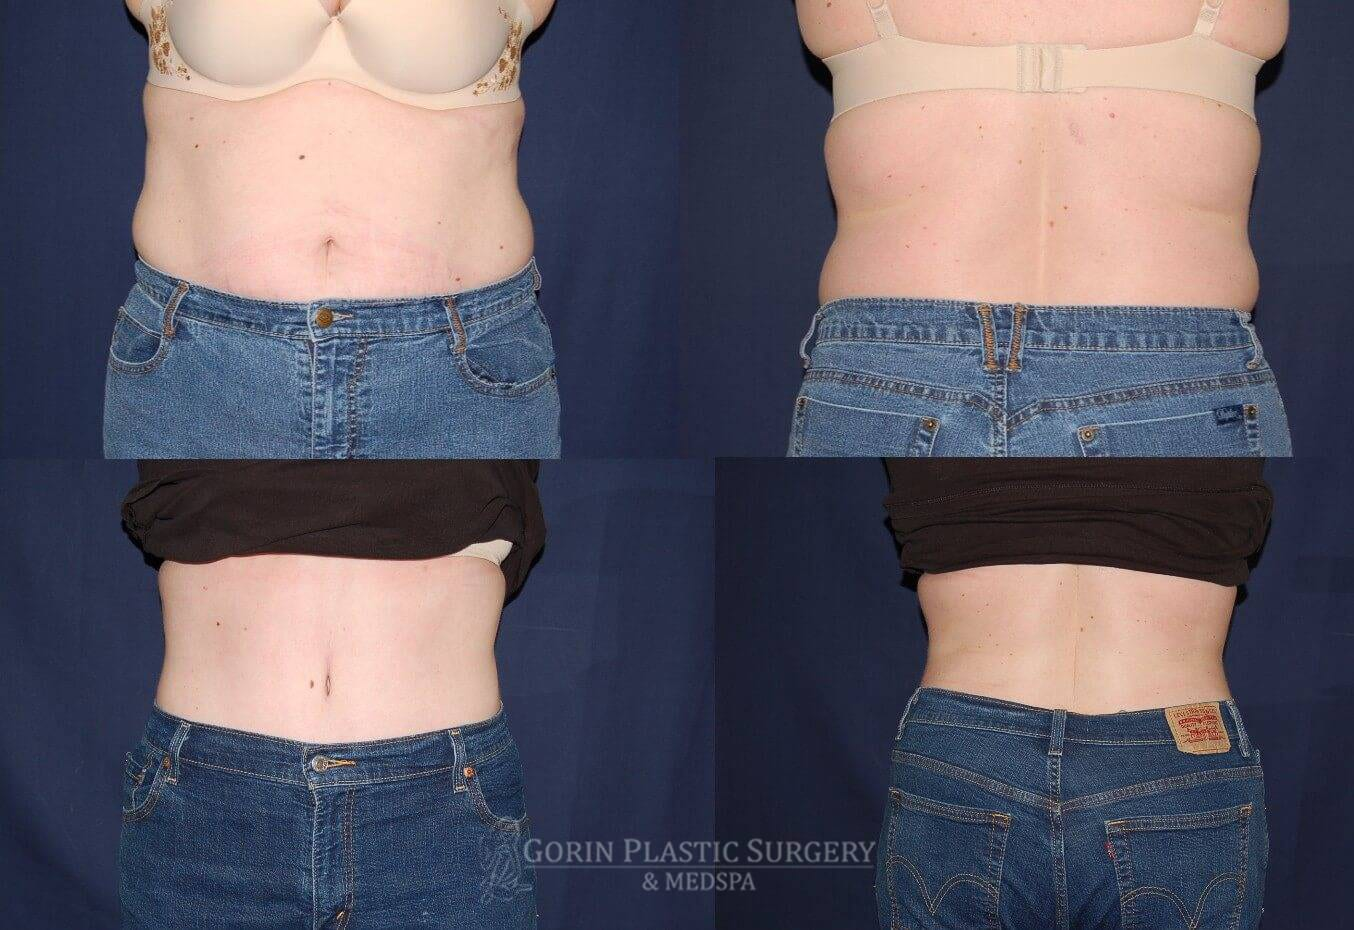 Tummy tuck before and after 10